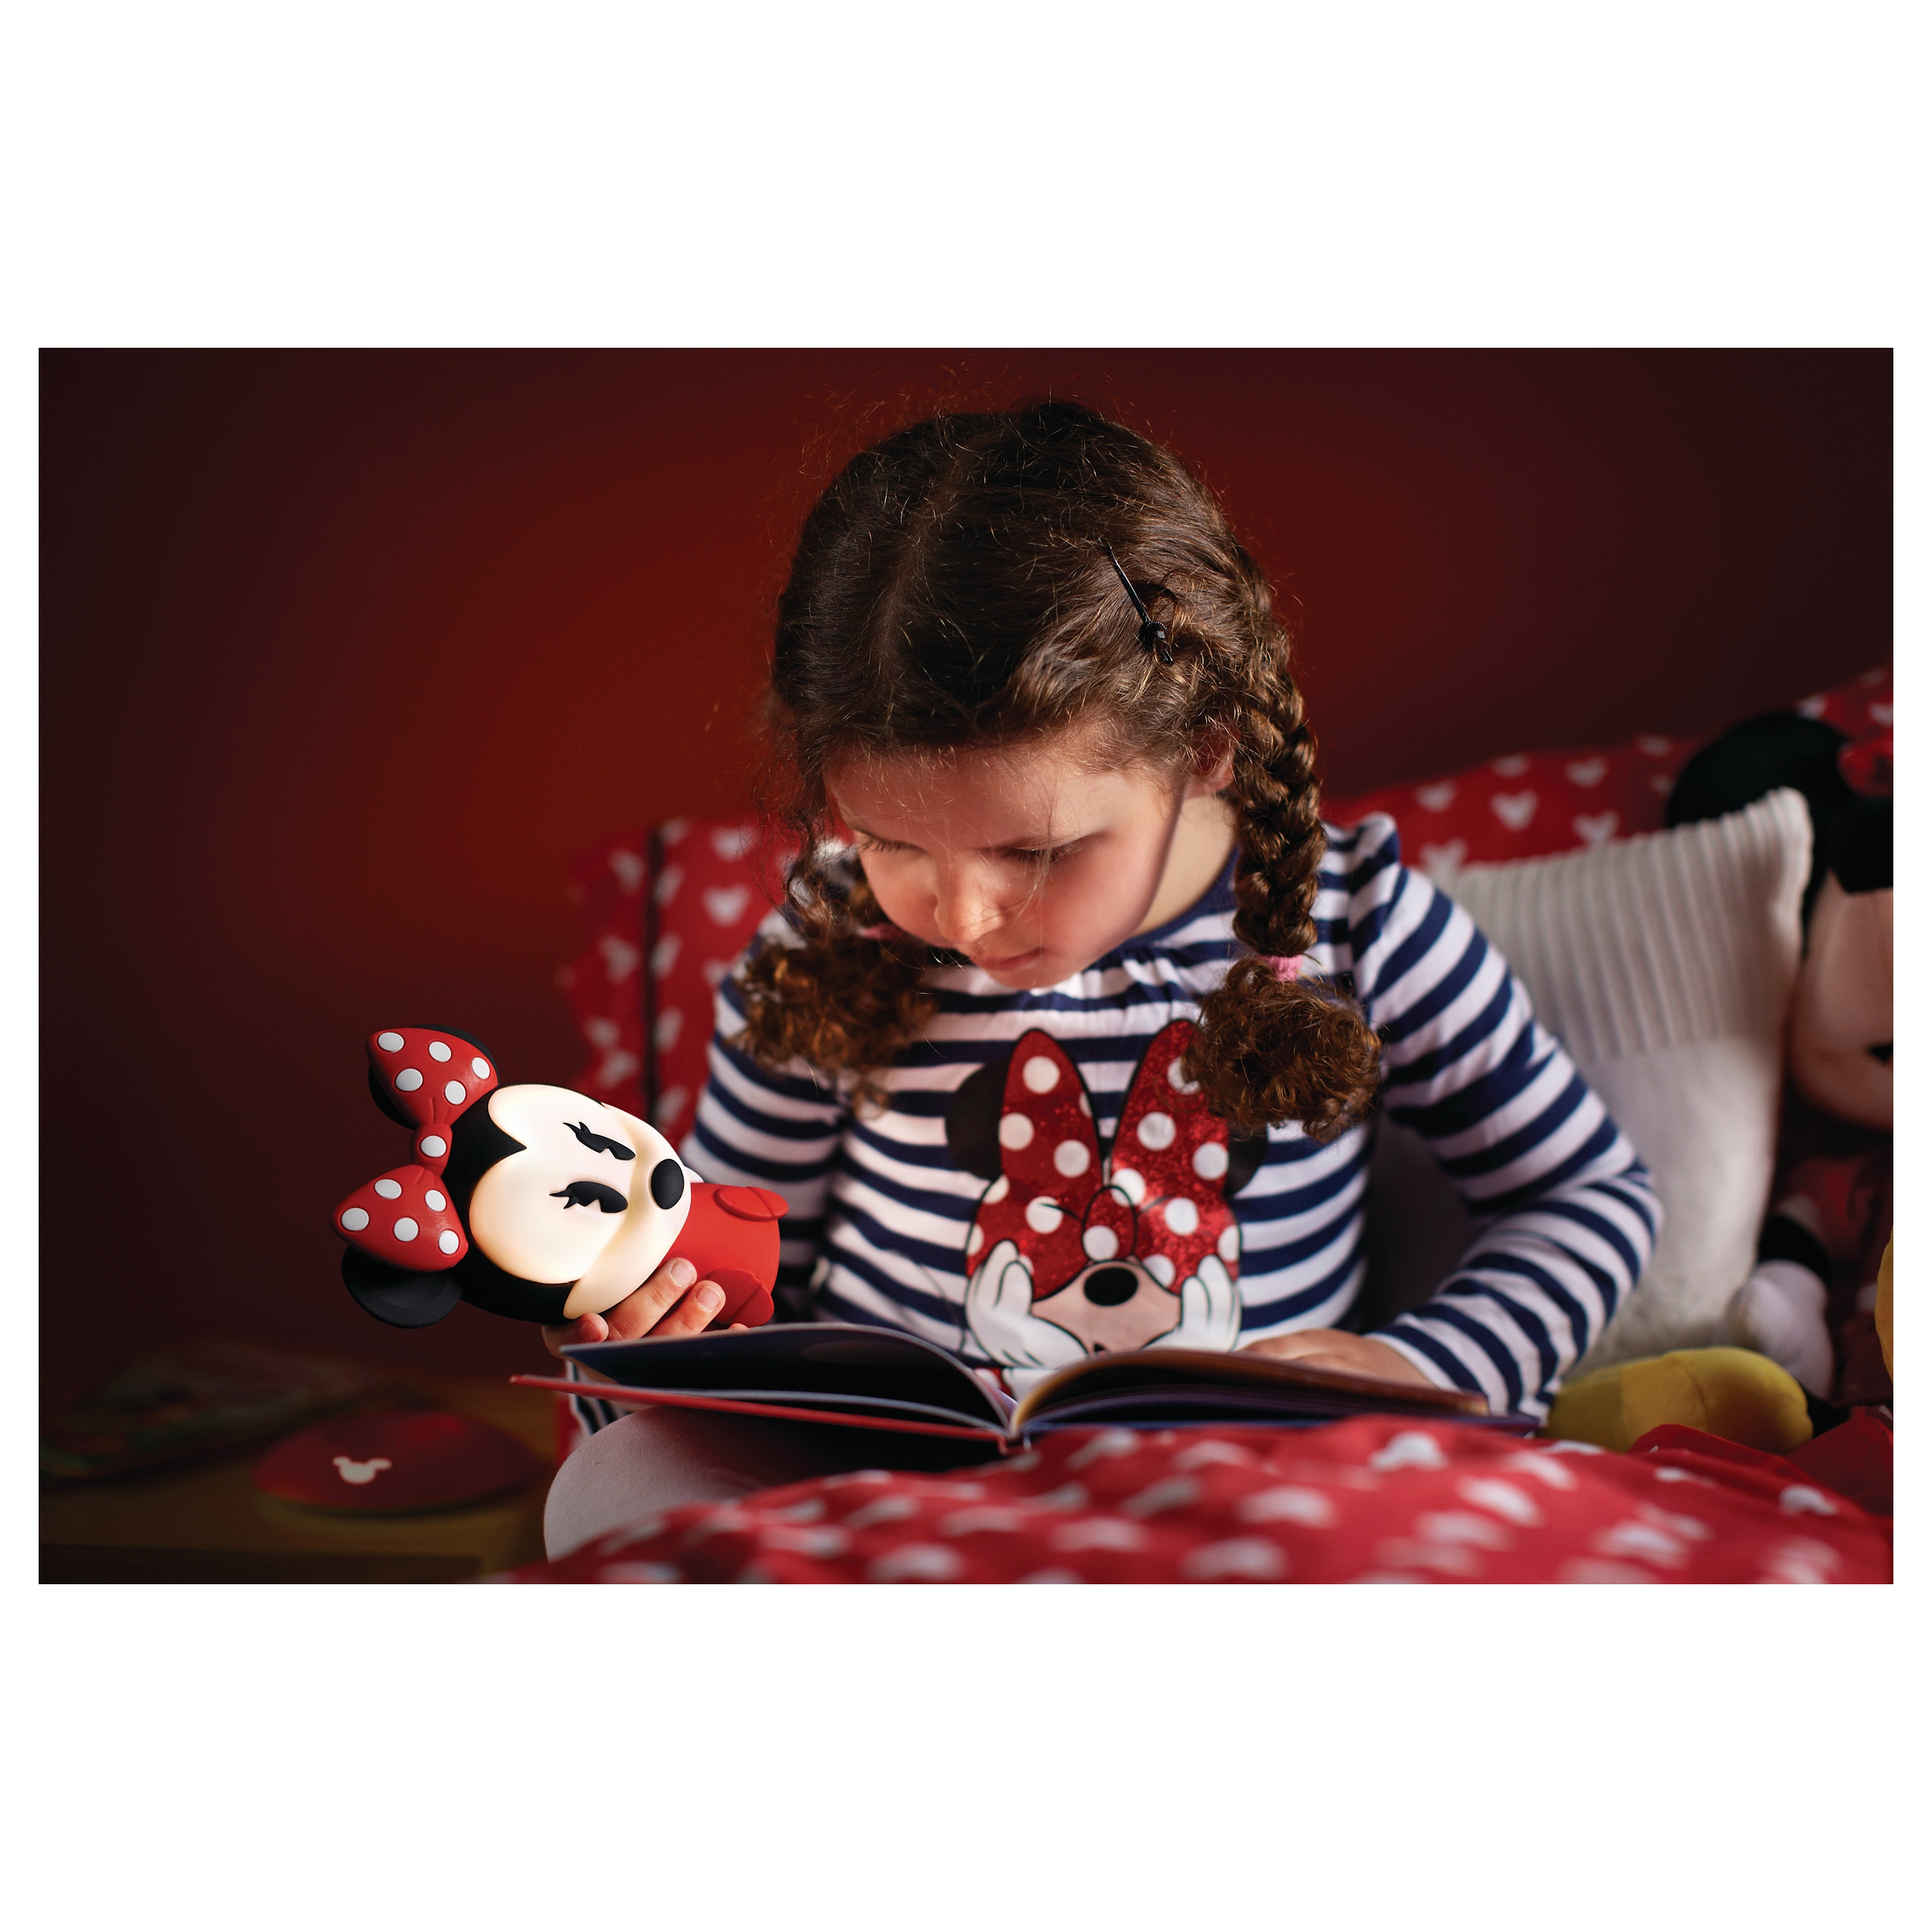 philips led lampe kinderzimmer disney tischleuchte minnie mouse licht 717103116 ebay. Black Bedroom Furniture Sets. Home Design Ideas